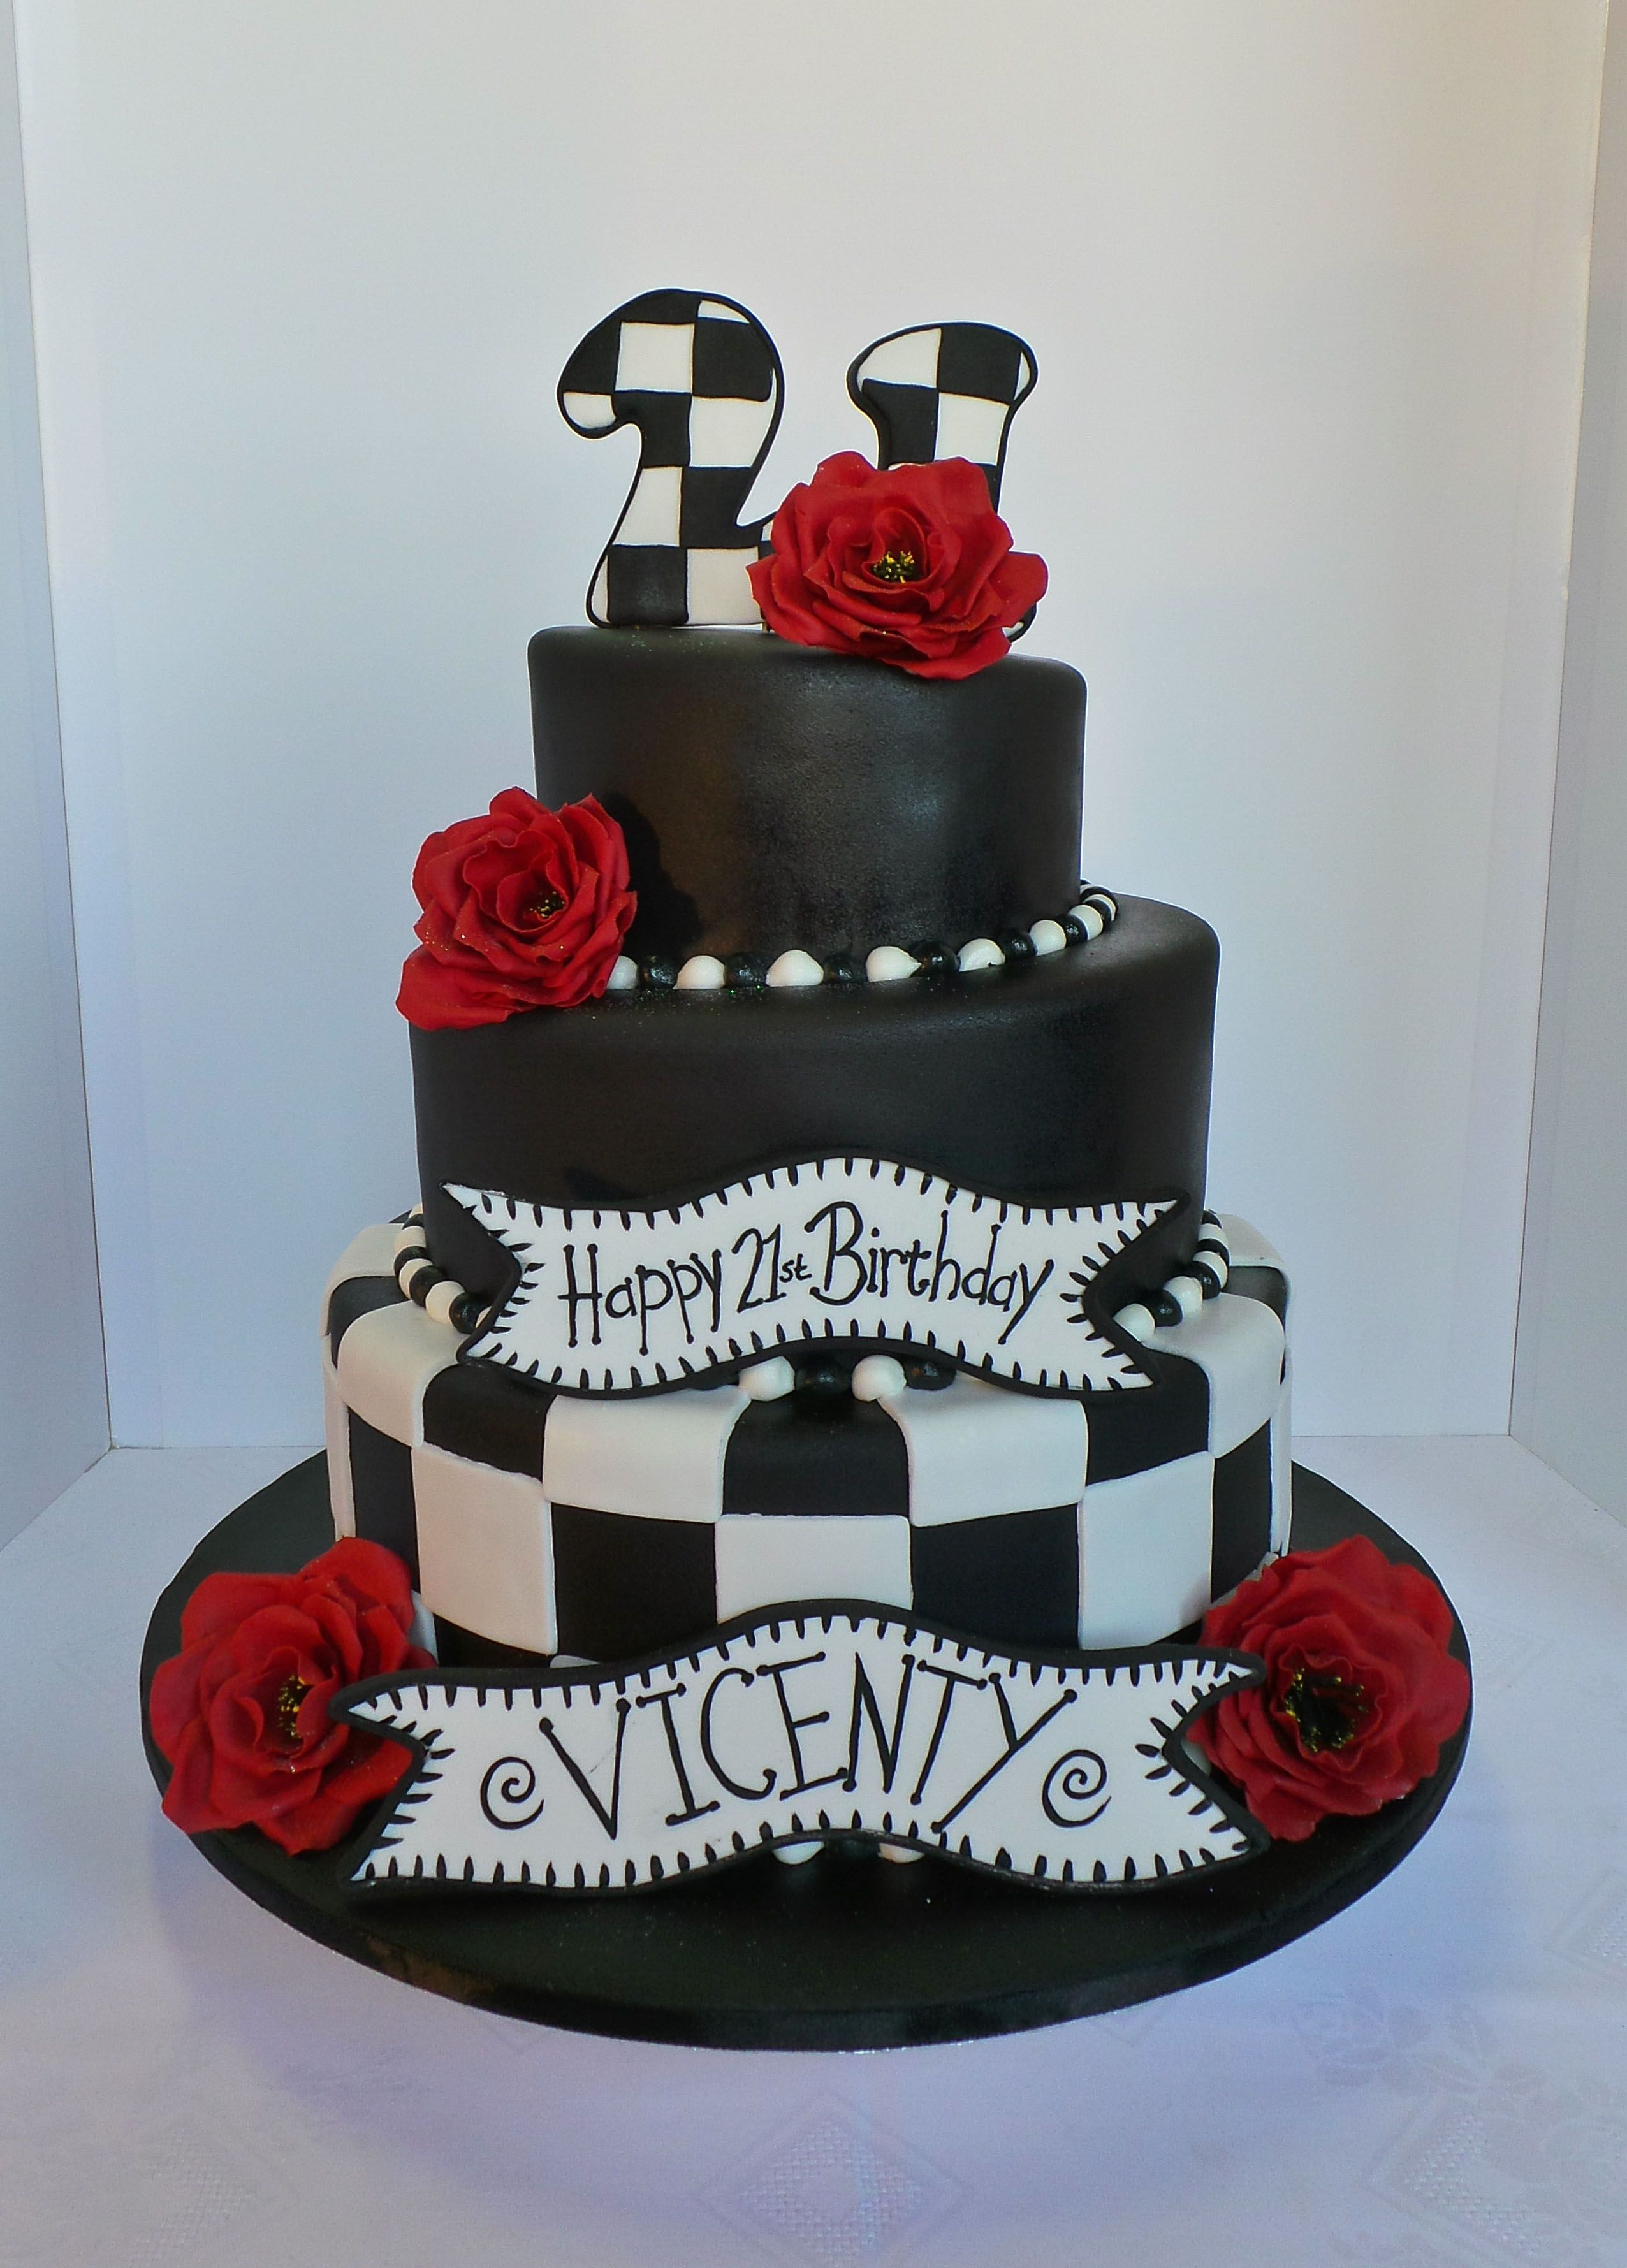 21st Black and White Birthday Cake Cakefoto was brought by client